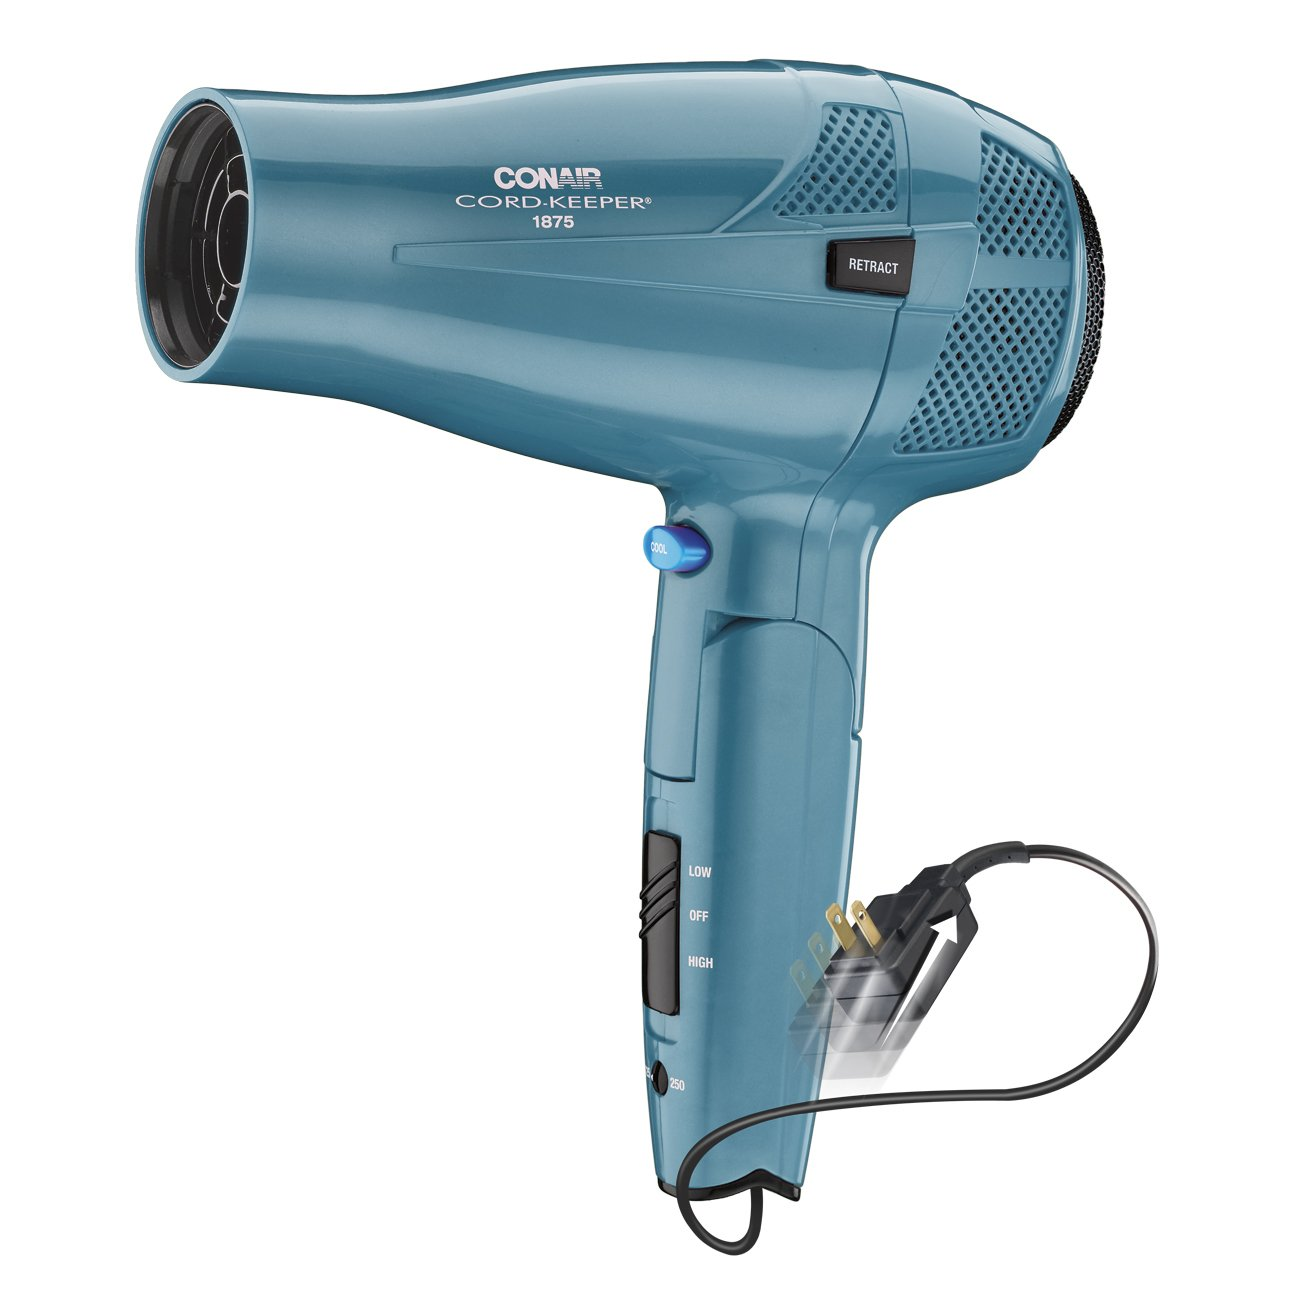 Conair 1875 Watt Cord Keeper Hair Dryer with Folding Handle and Retractable Cord, Travel Hair Dryer, Teal by Conair